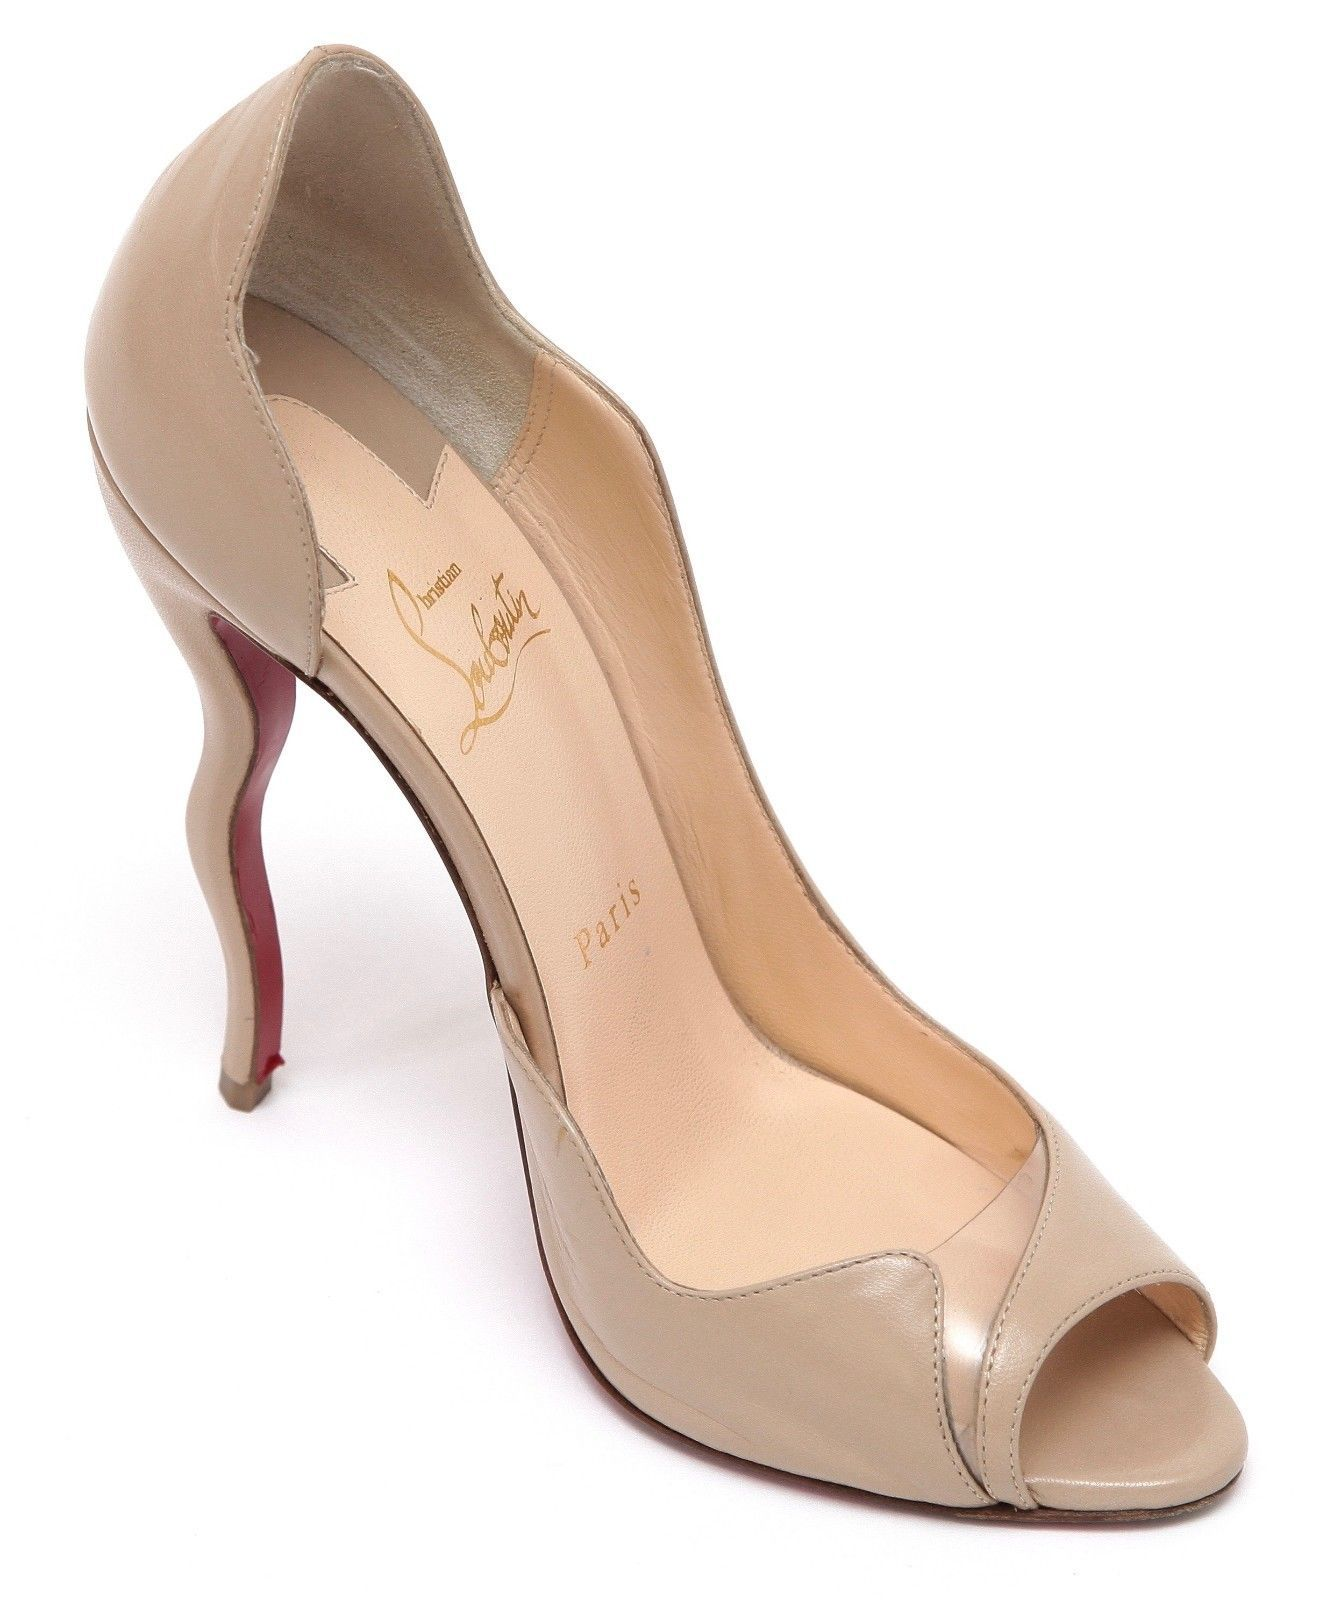 1fcdfeac484 S l1600. S l1600. Previous. Christian Louboutin Pump Leather PVC D Orsay  NUDE WAVY Peep Toe Heel 120mm Sz 38